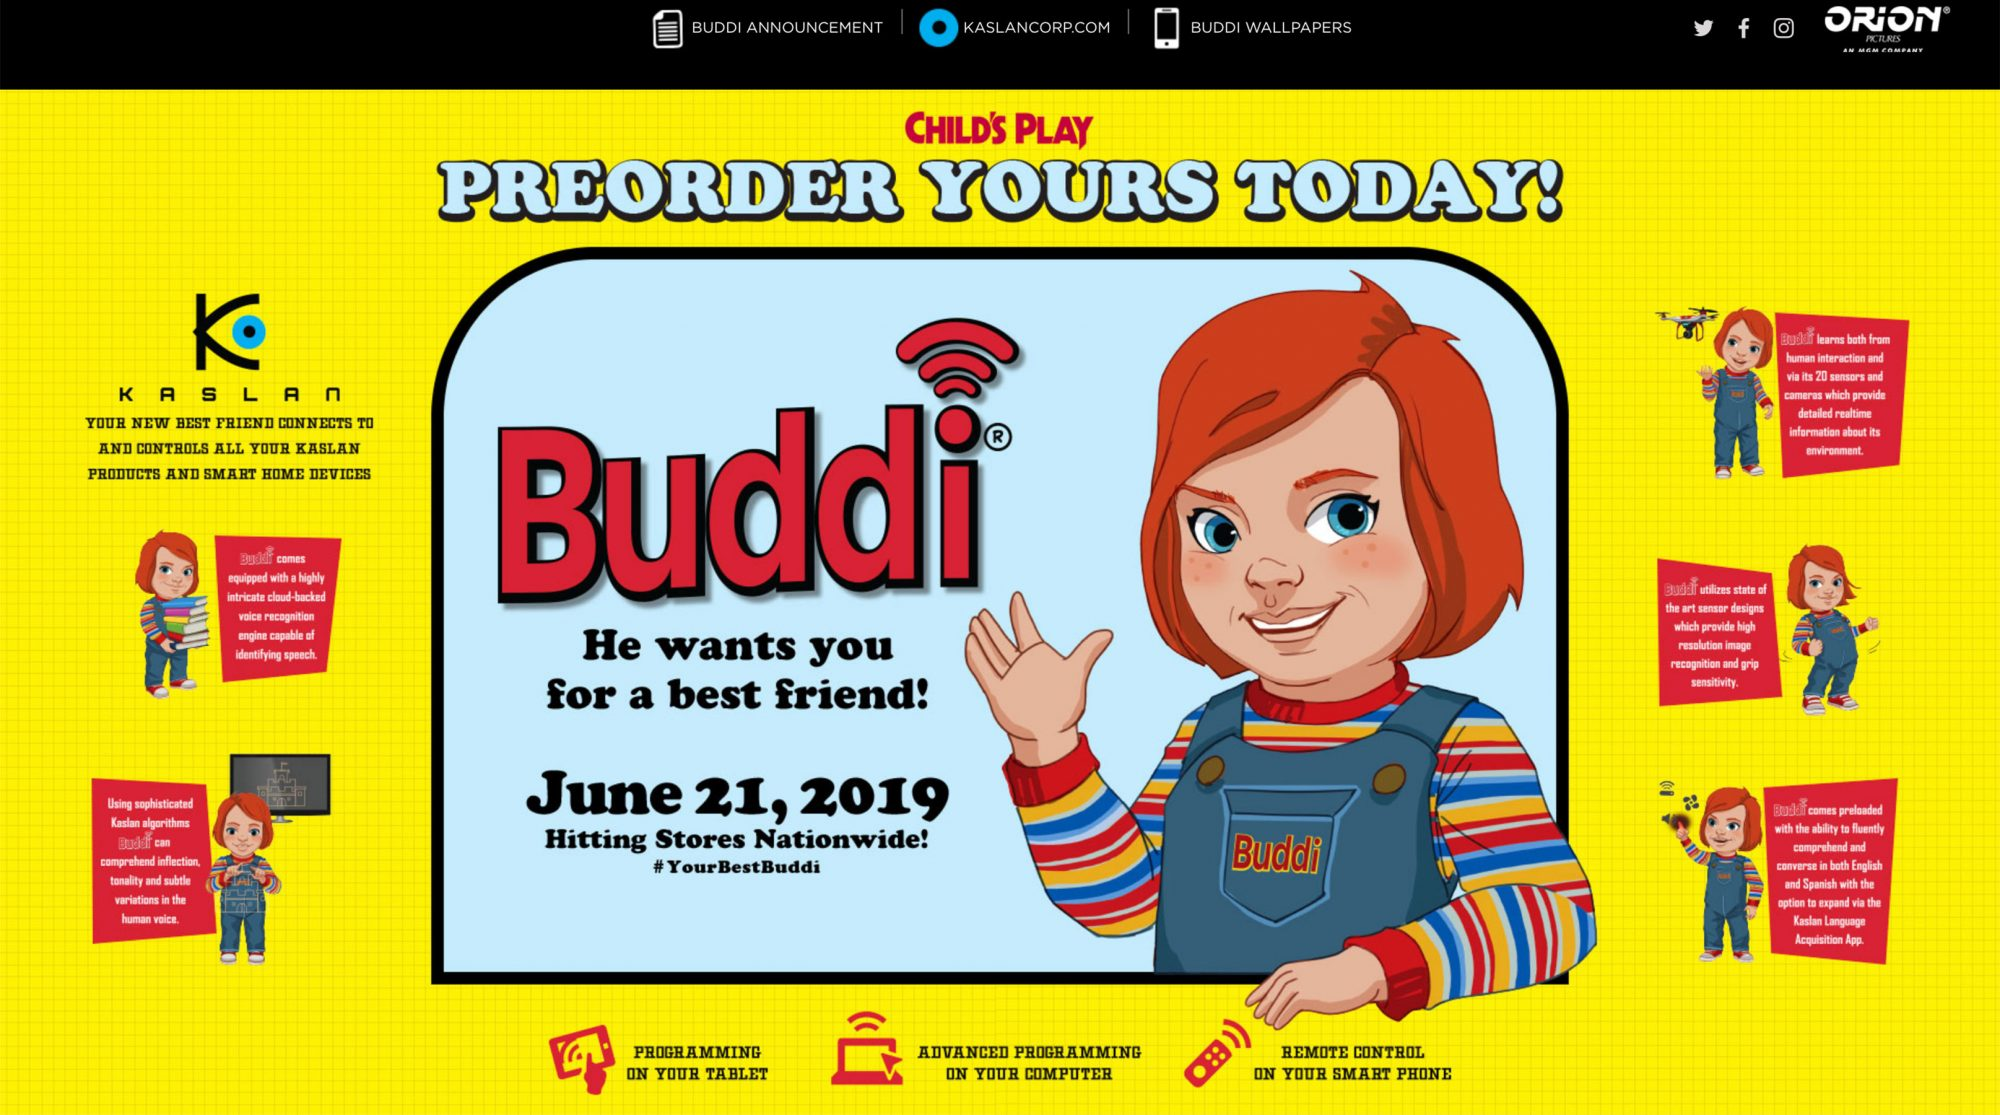 https://bestbuddi.com/Child's PlayCR: Orion Pictures